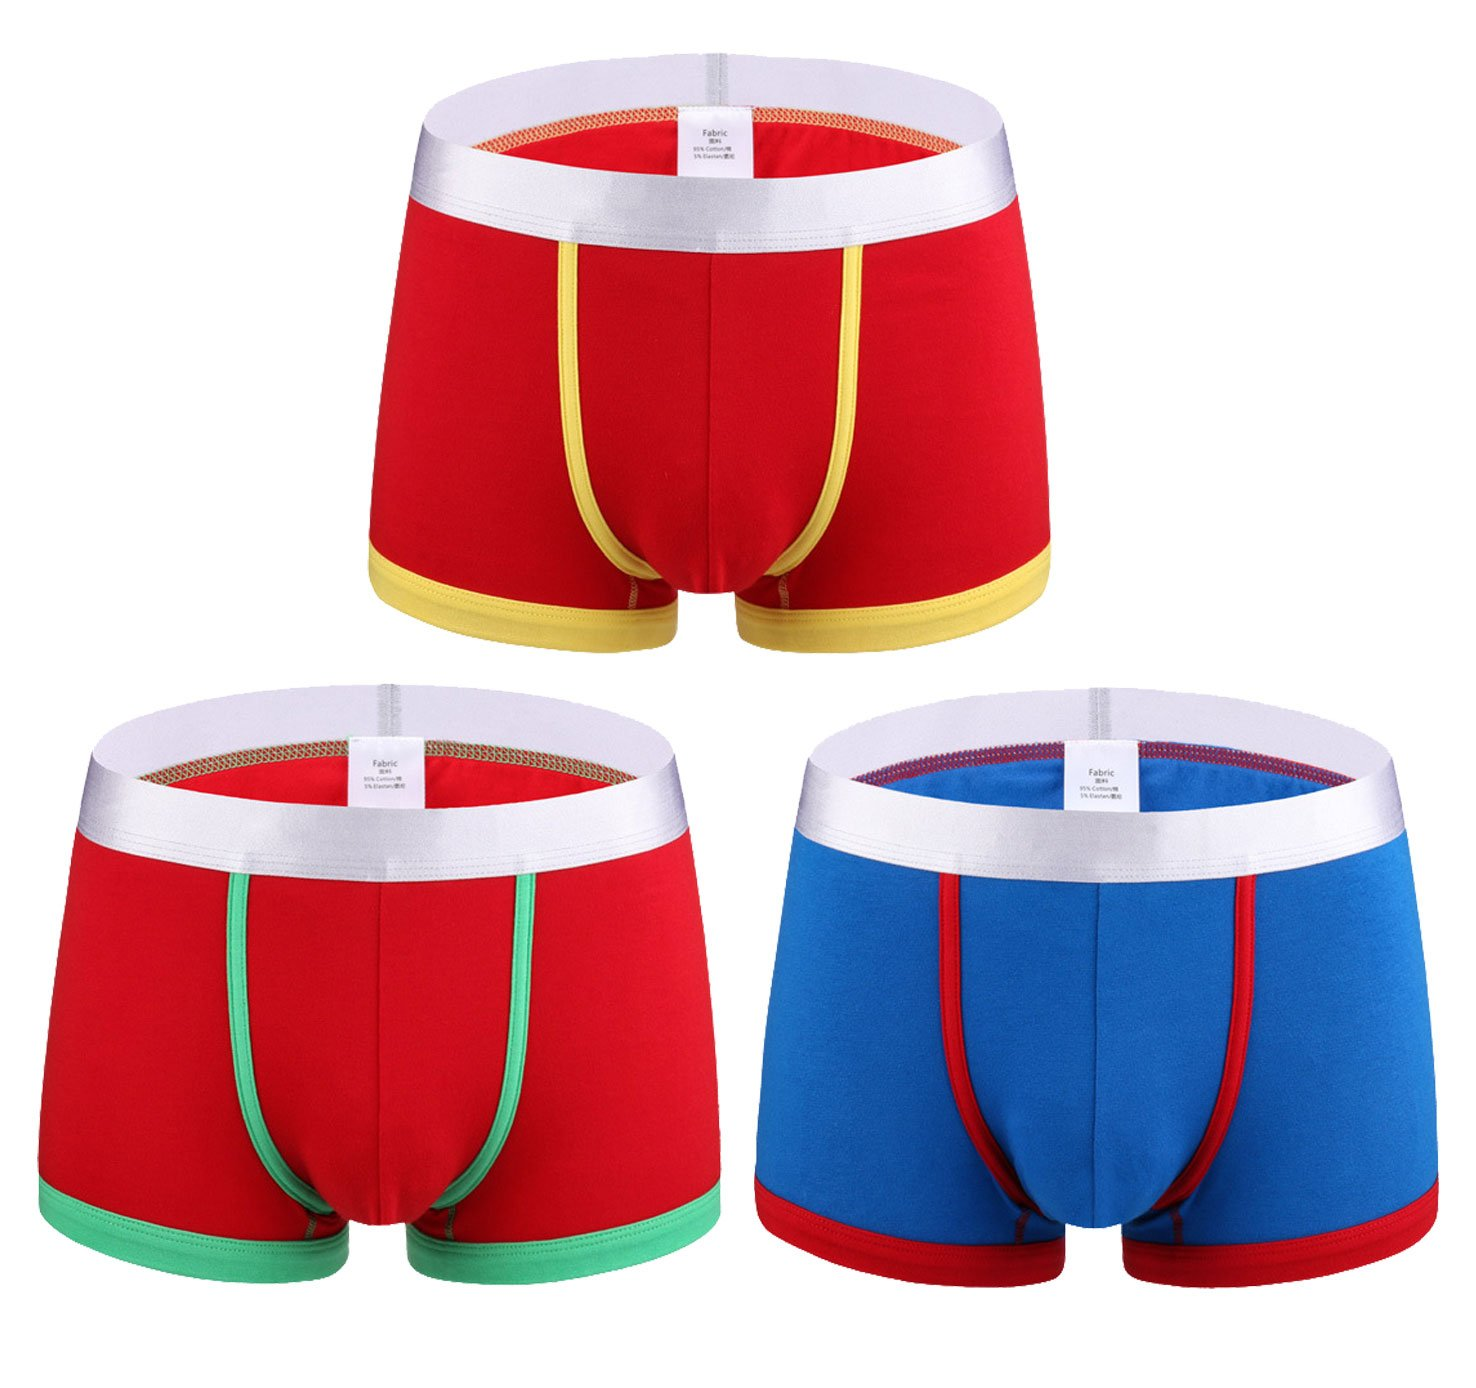 Femaroly Men's Boxer Briefs 3 Pack Fashion Underwear Pants Durable Underpants Blue_Red/Red_Green/Red_Yellow US S-Tag L Waist:29''-33''